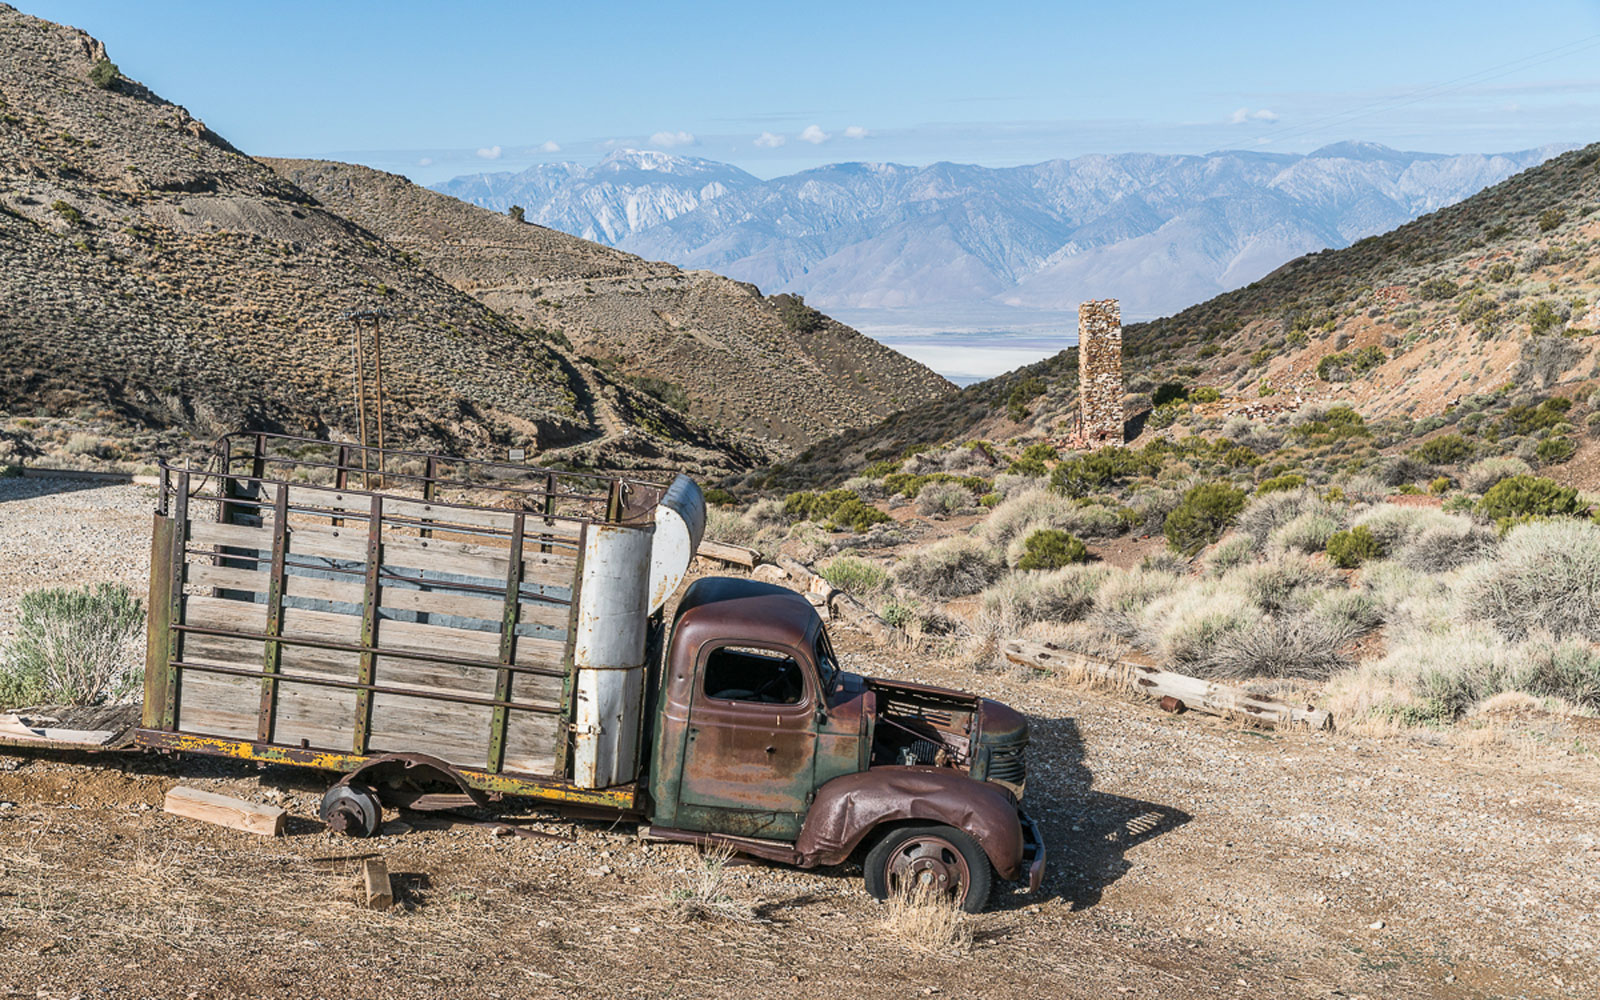 A historic mining truck used to transfer silver from Cerro Gordo, California.